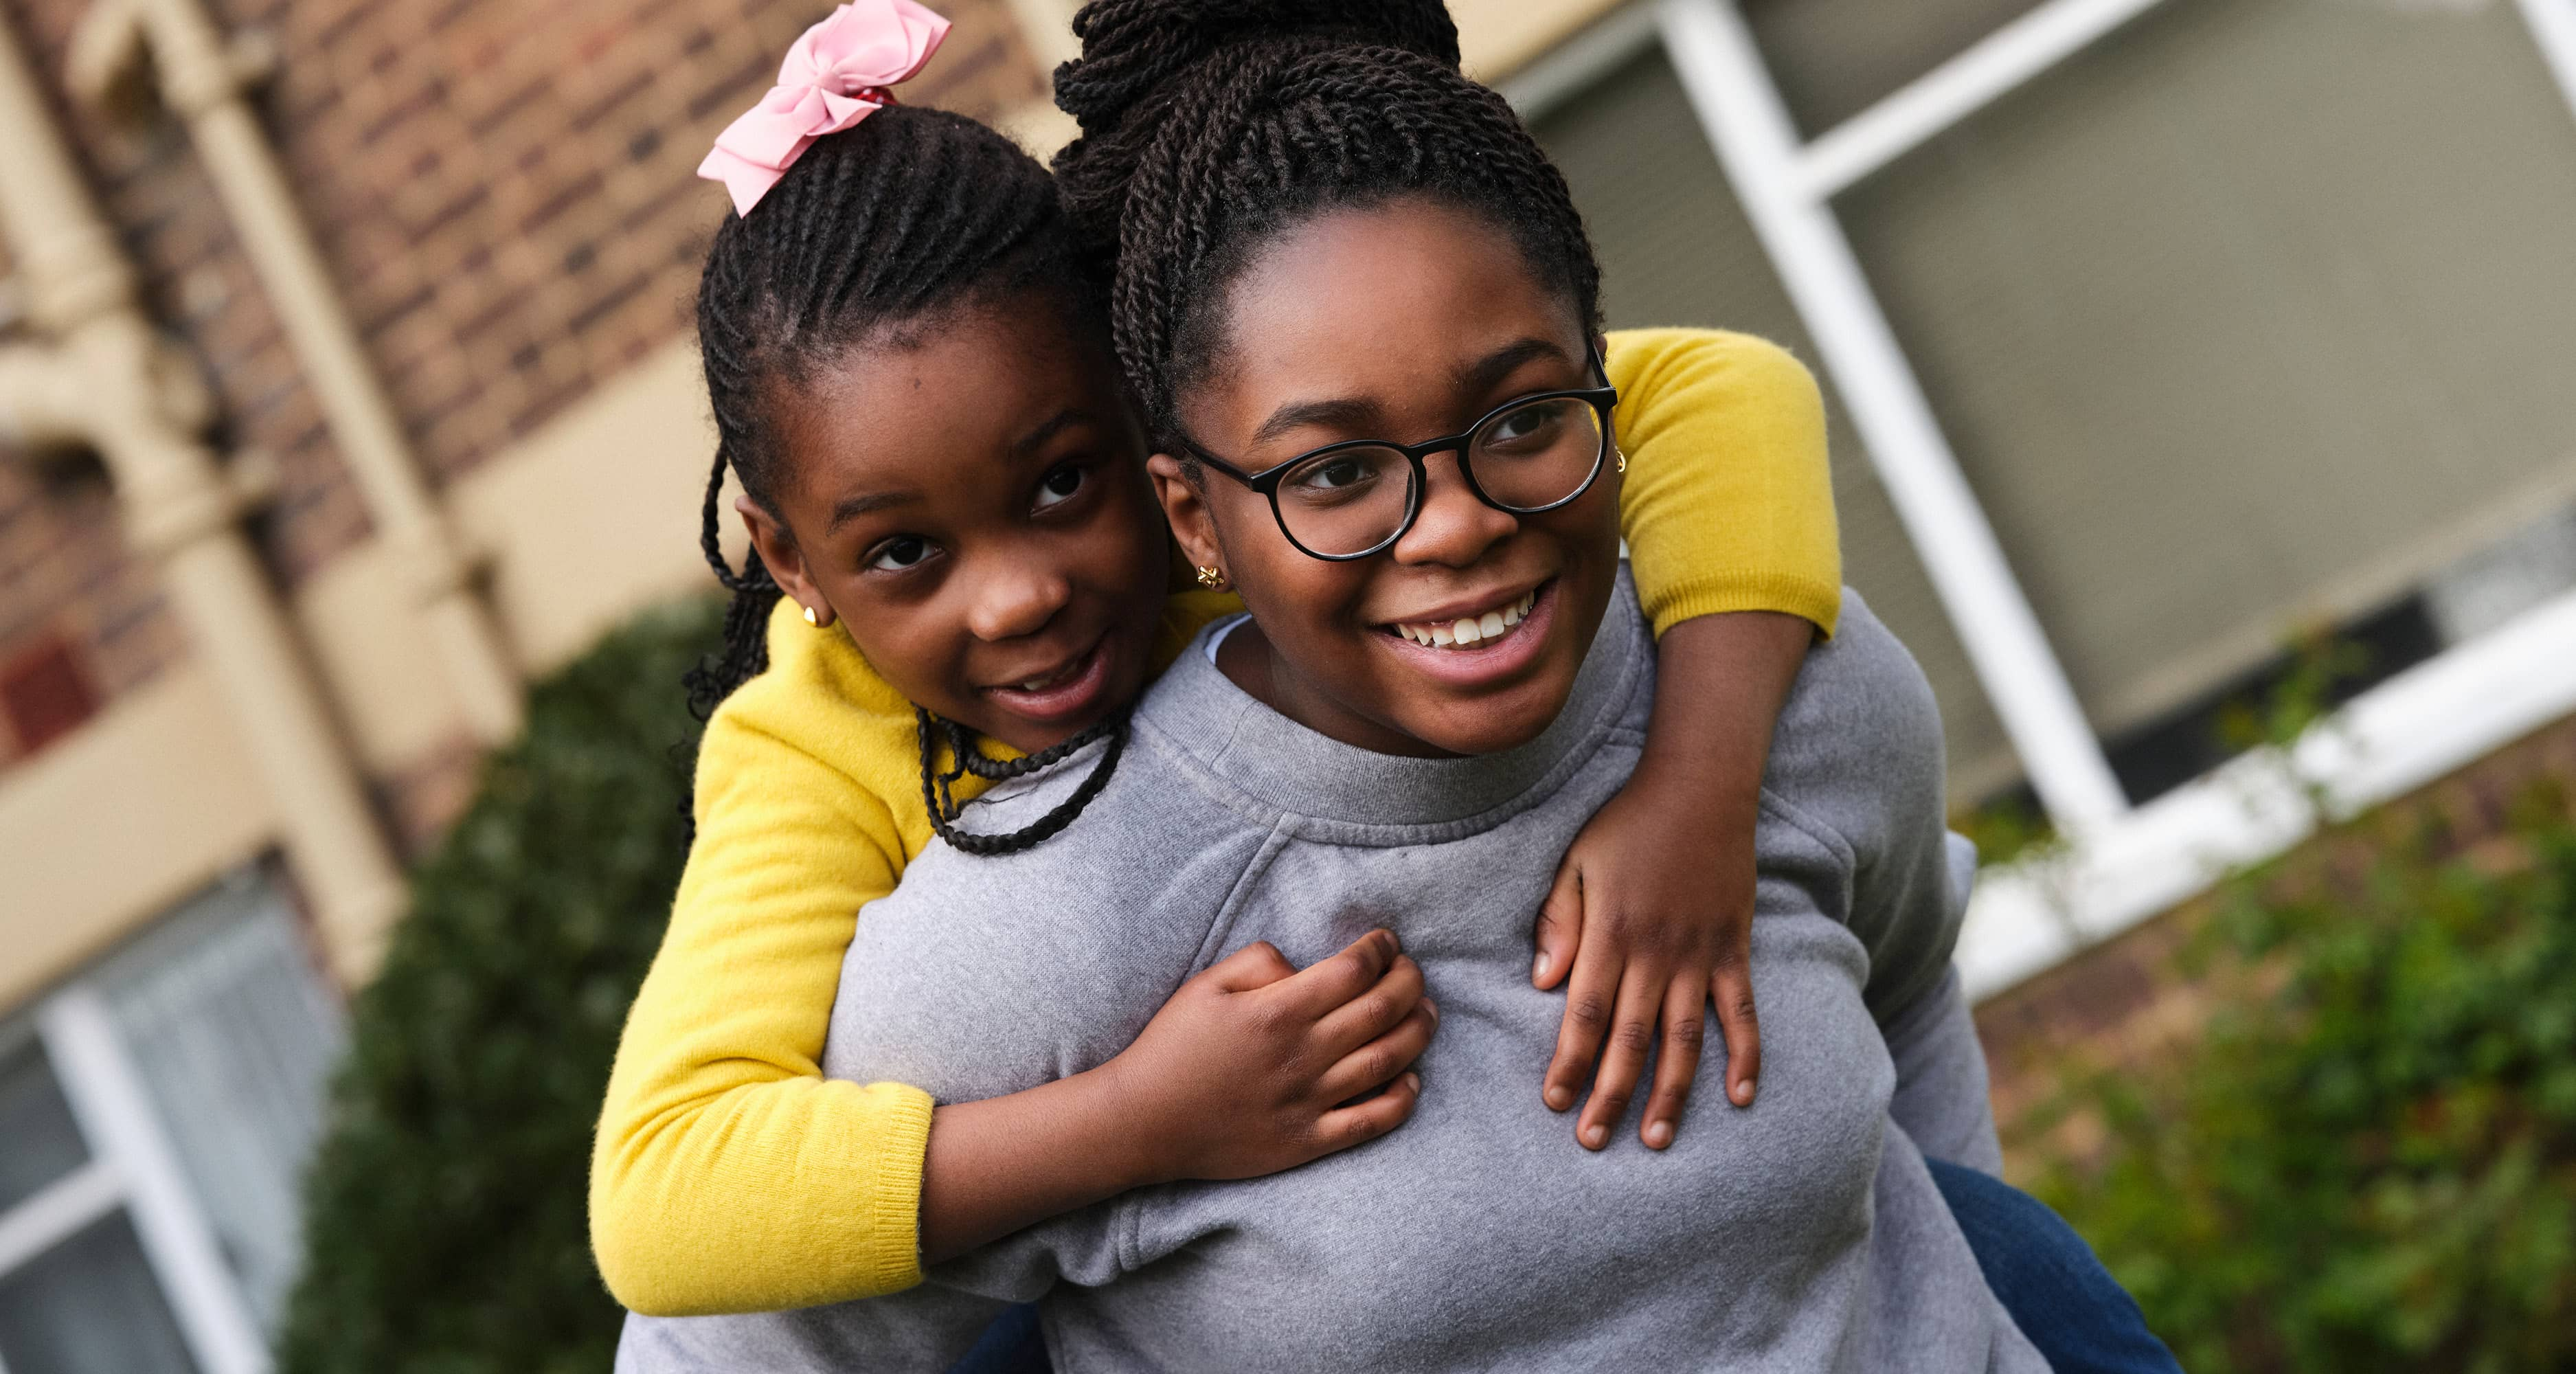 Two girls playing together and smiling outside